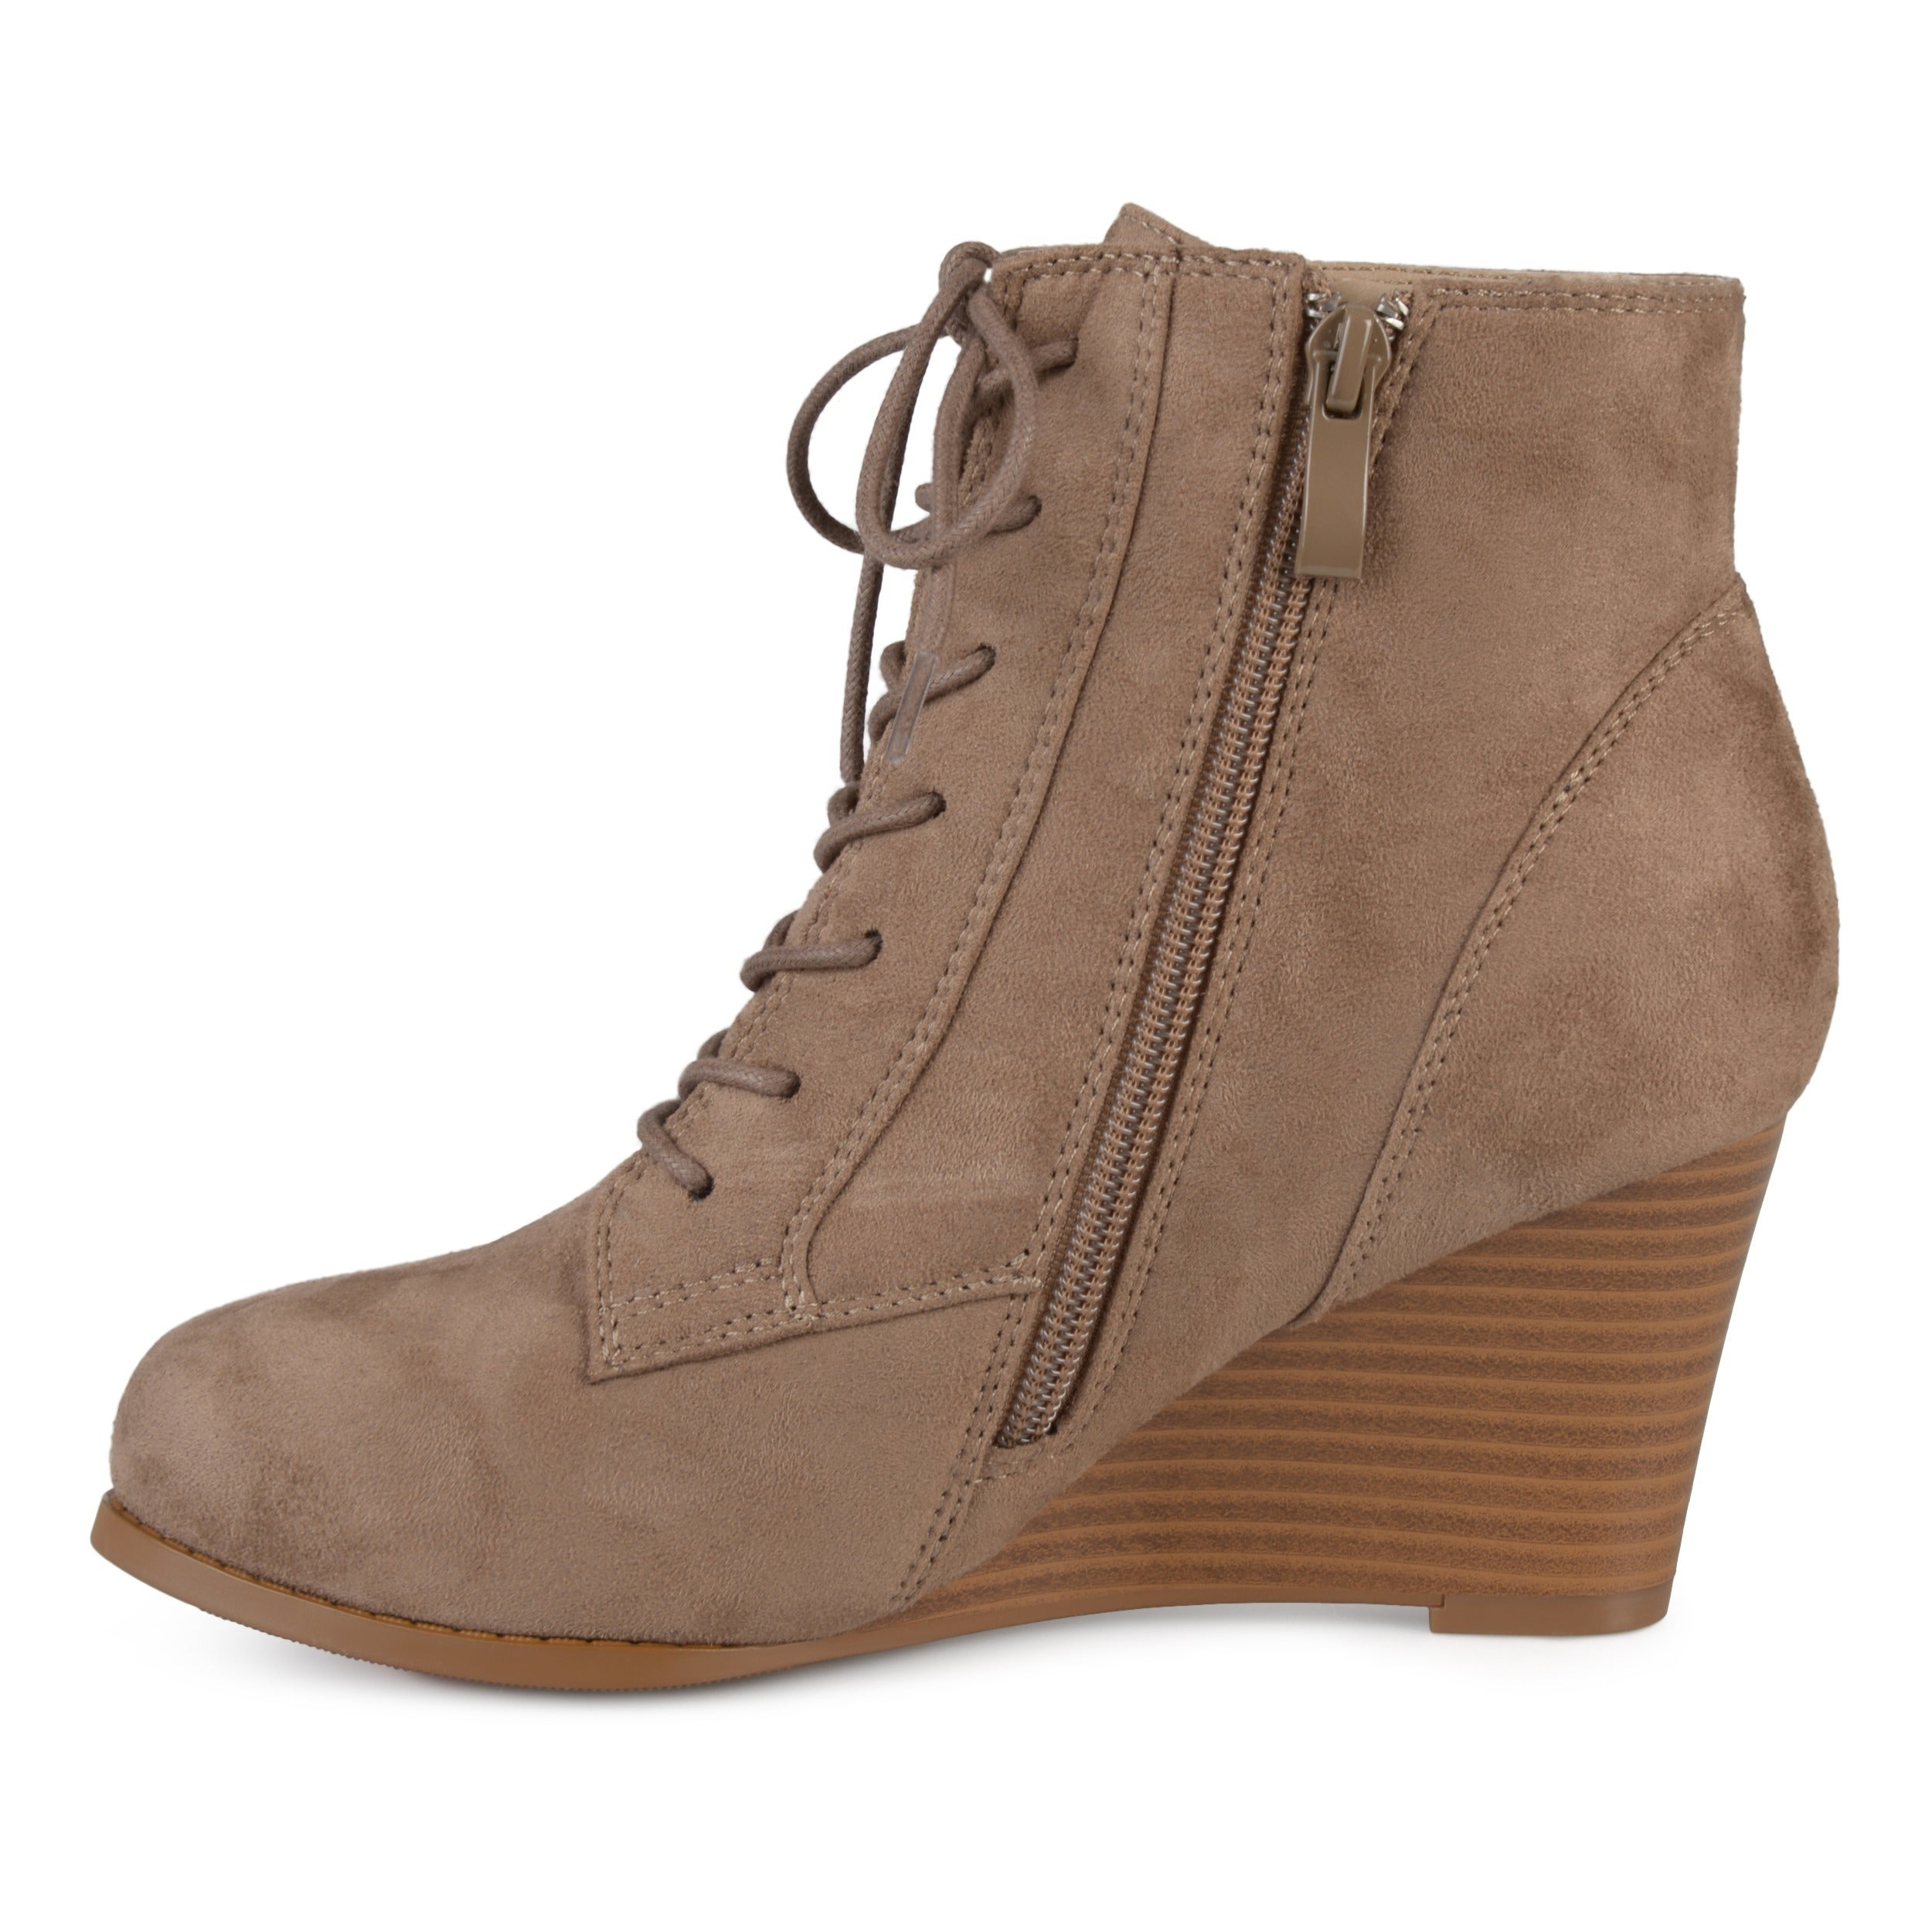 c26b982d0f7a2 Shop Journee Collection Women s  Magely  Lace-up Stacked Wedge Booties -  Free Shipping Today - Overstock - 16413235